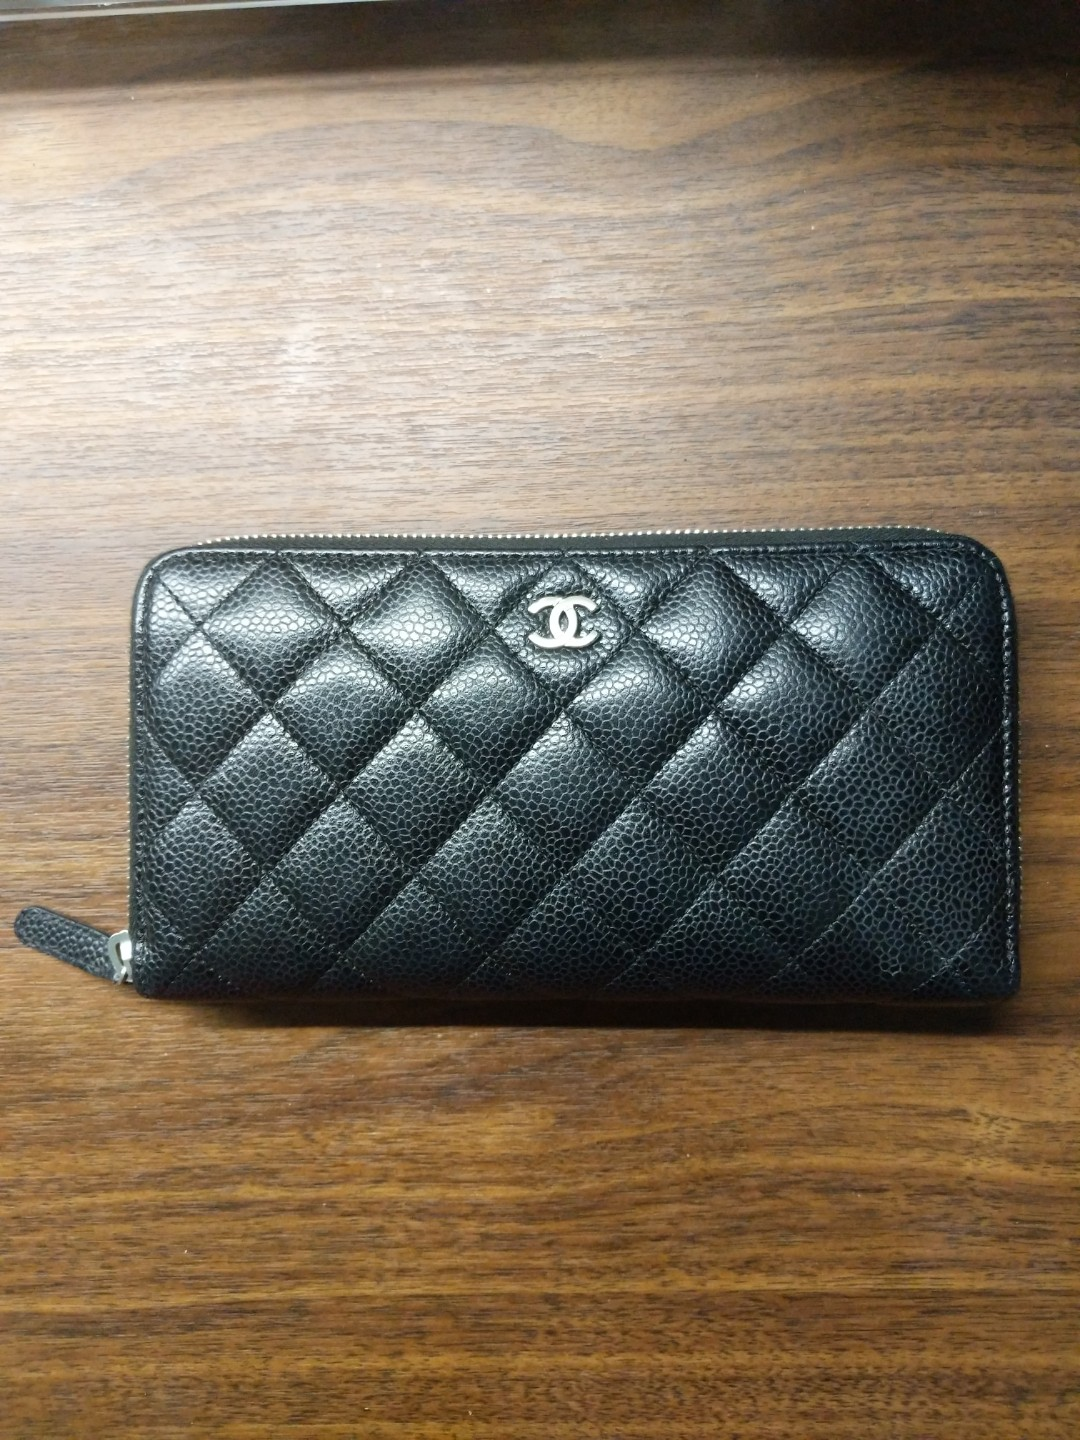 96a175cfddd9b9 Chanel caviar zip around wallet in silver hardware, Luxury, Bags ...